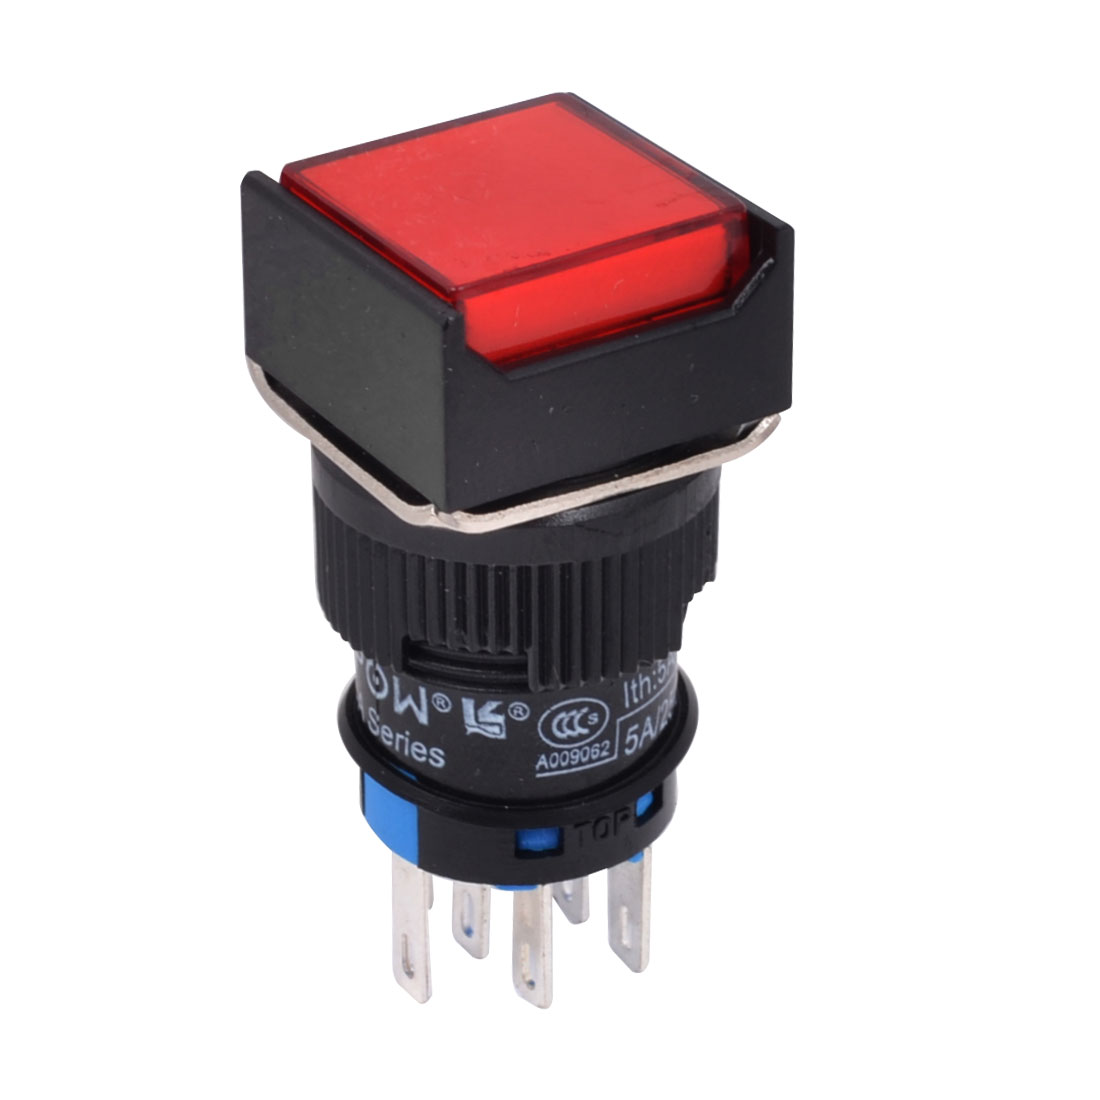 DPDT 8Pins 16mm Thread Red Square Head Momentary Push Button Switch